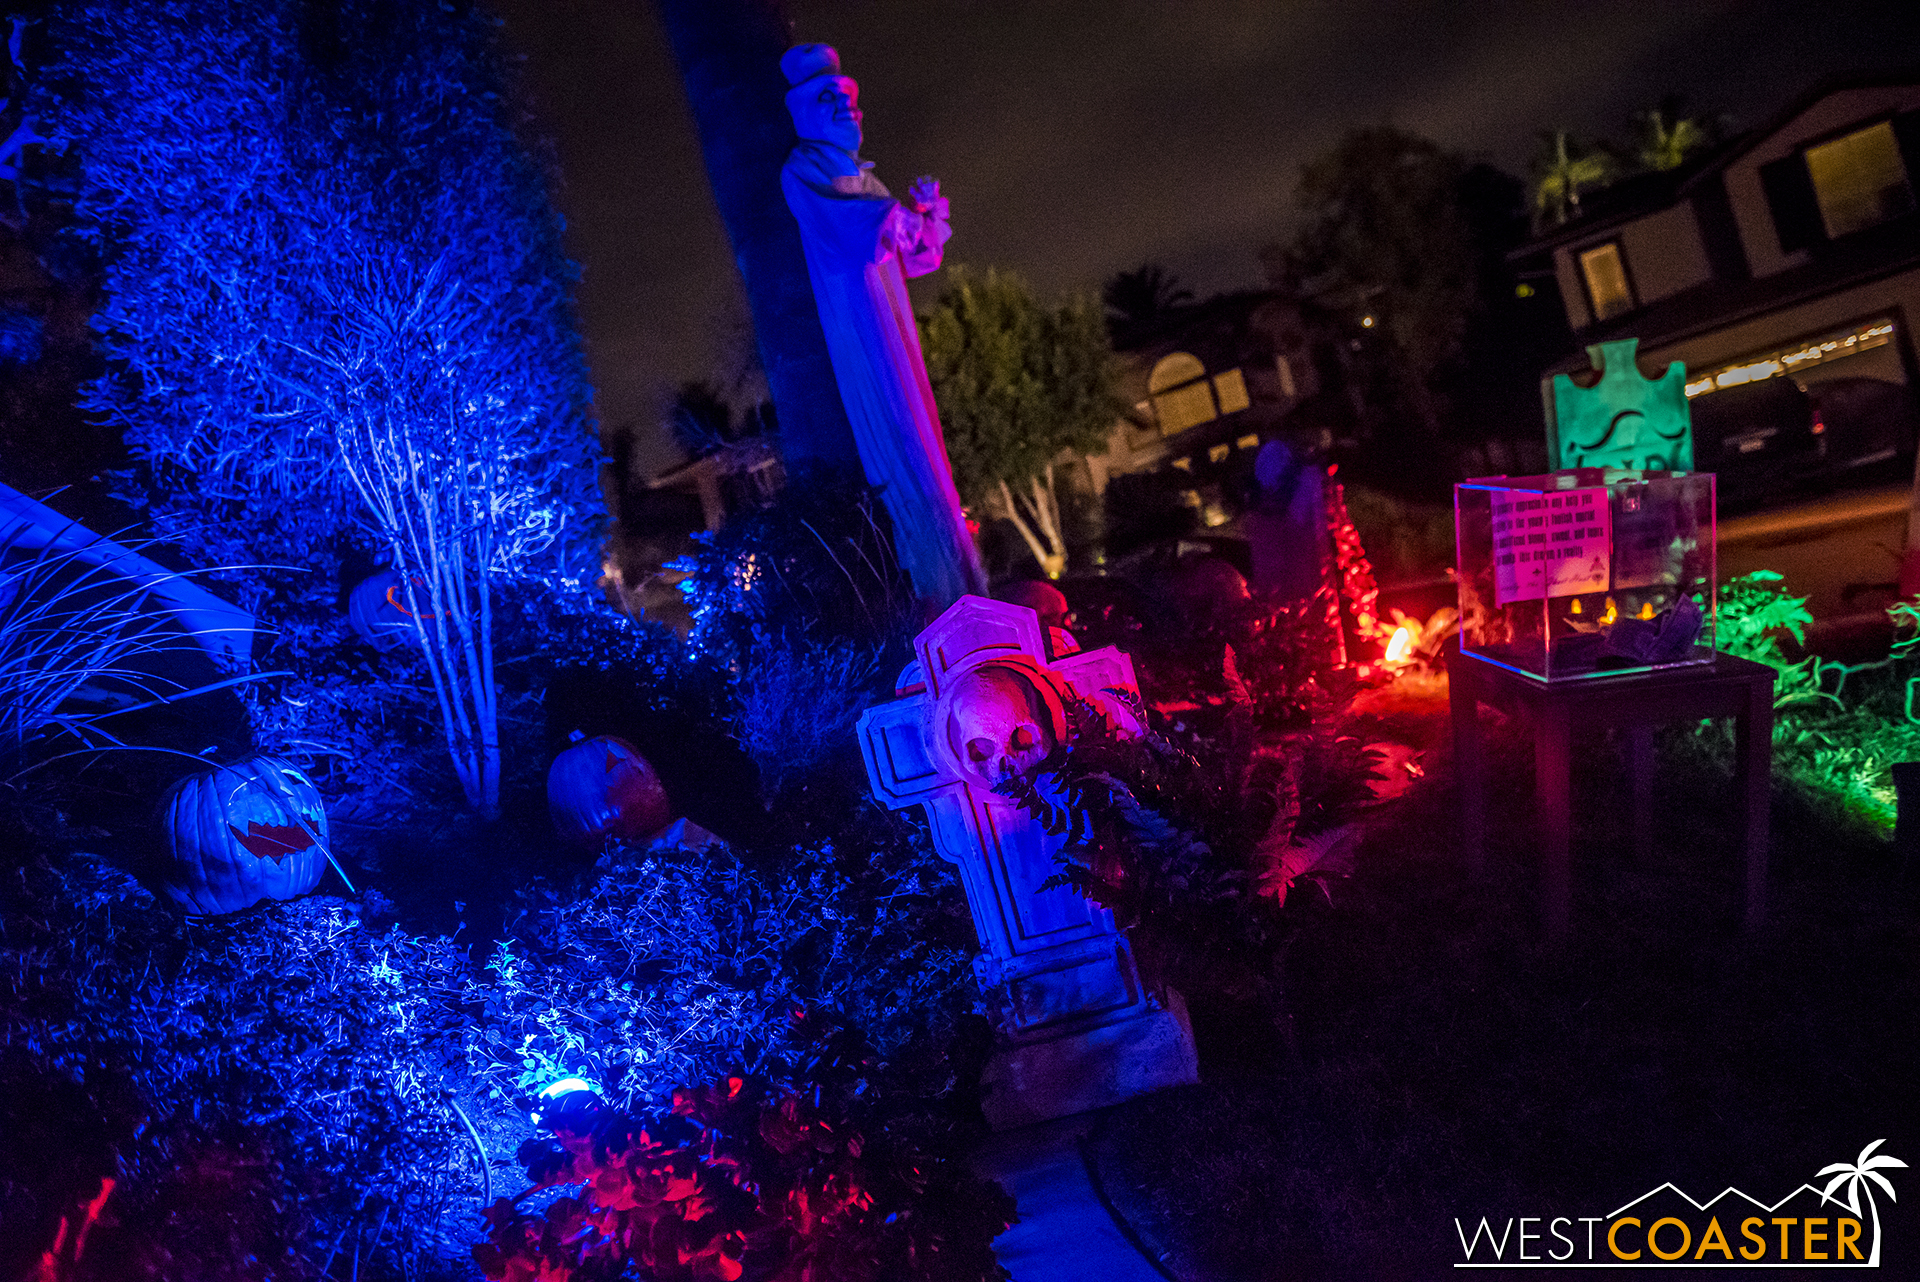 Fittingly for the ride's 50th anniversary, this fan tribute home haunted house/yard display will be back again this year.